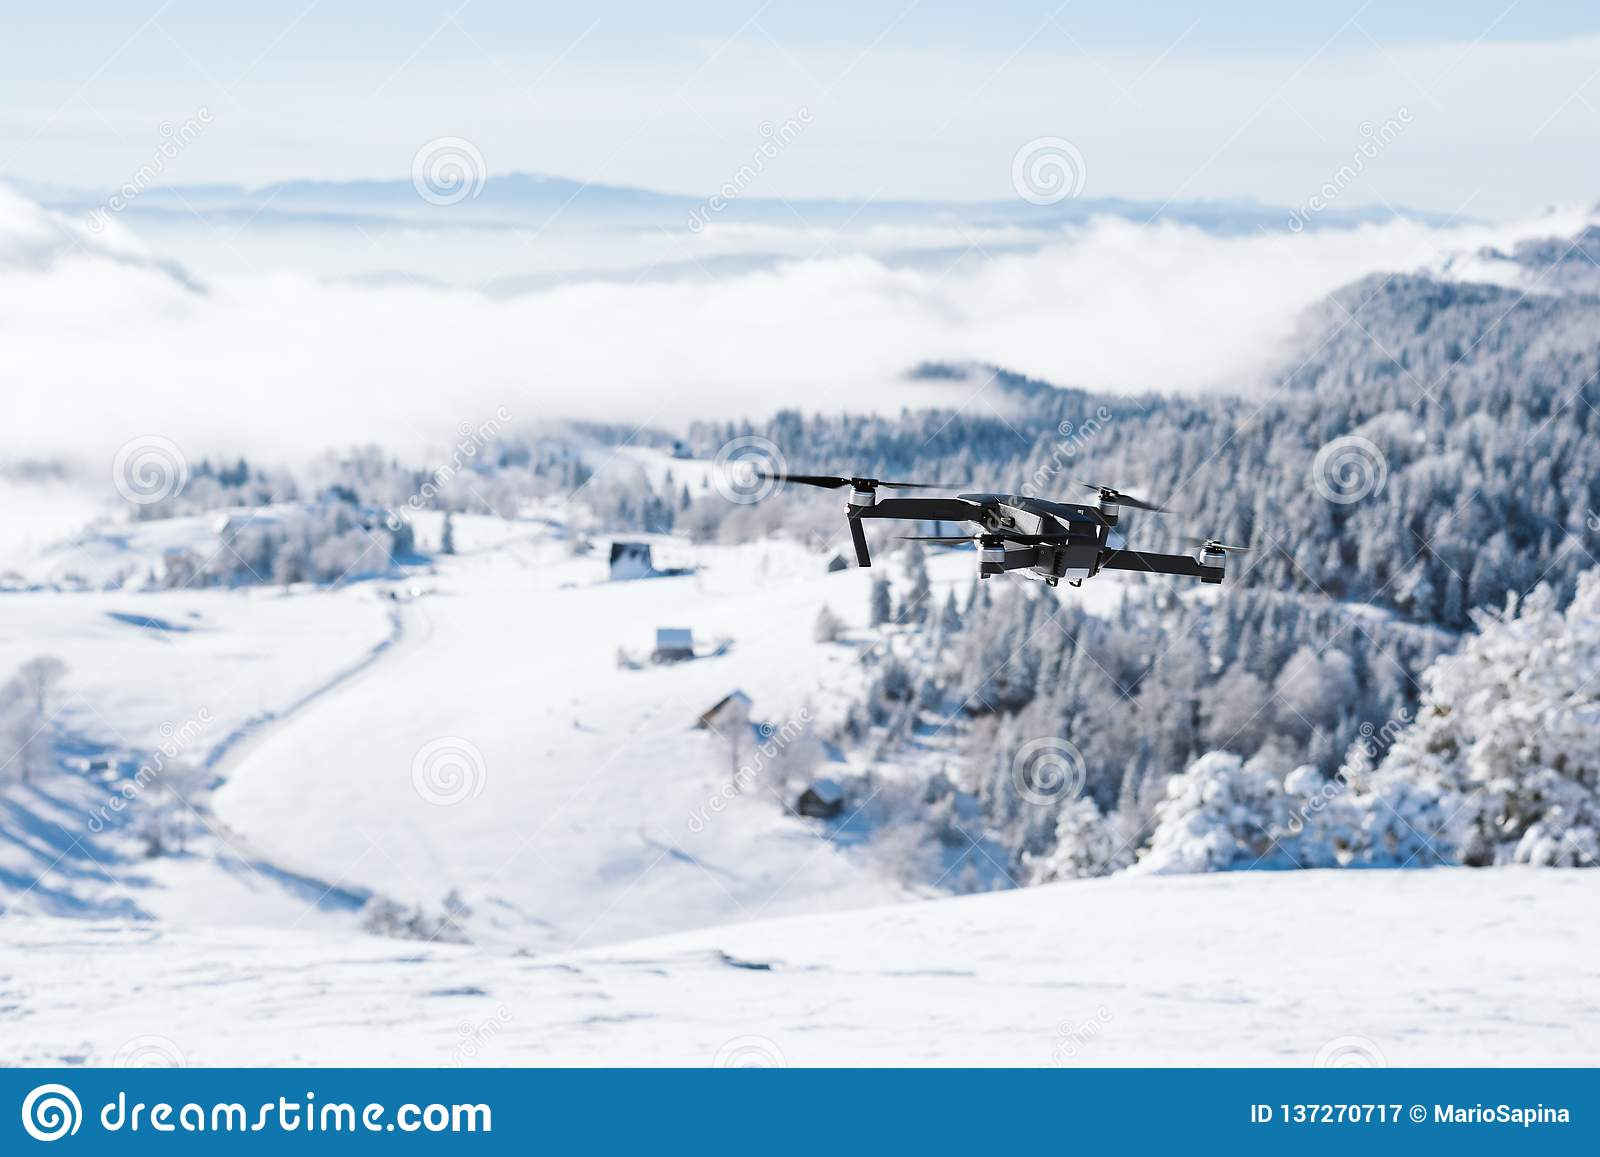 Drone Flying Over A Mountain Covered With Snow Stock Image